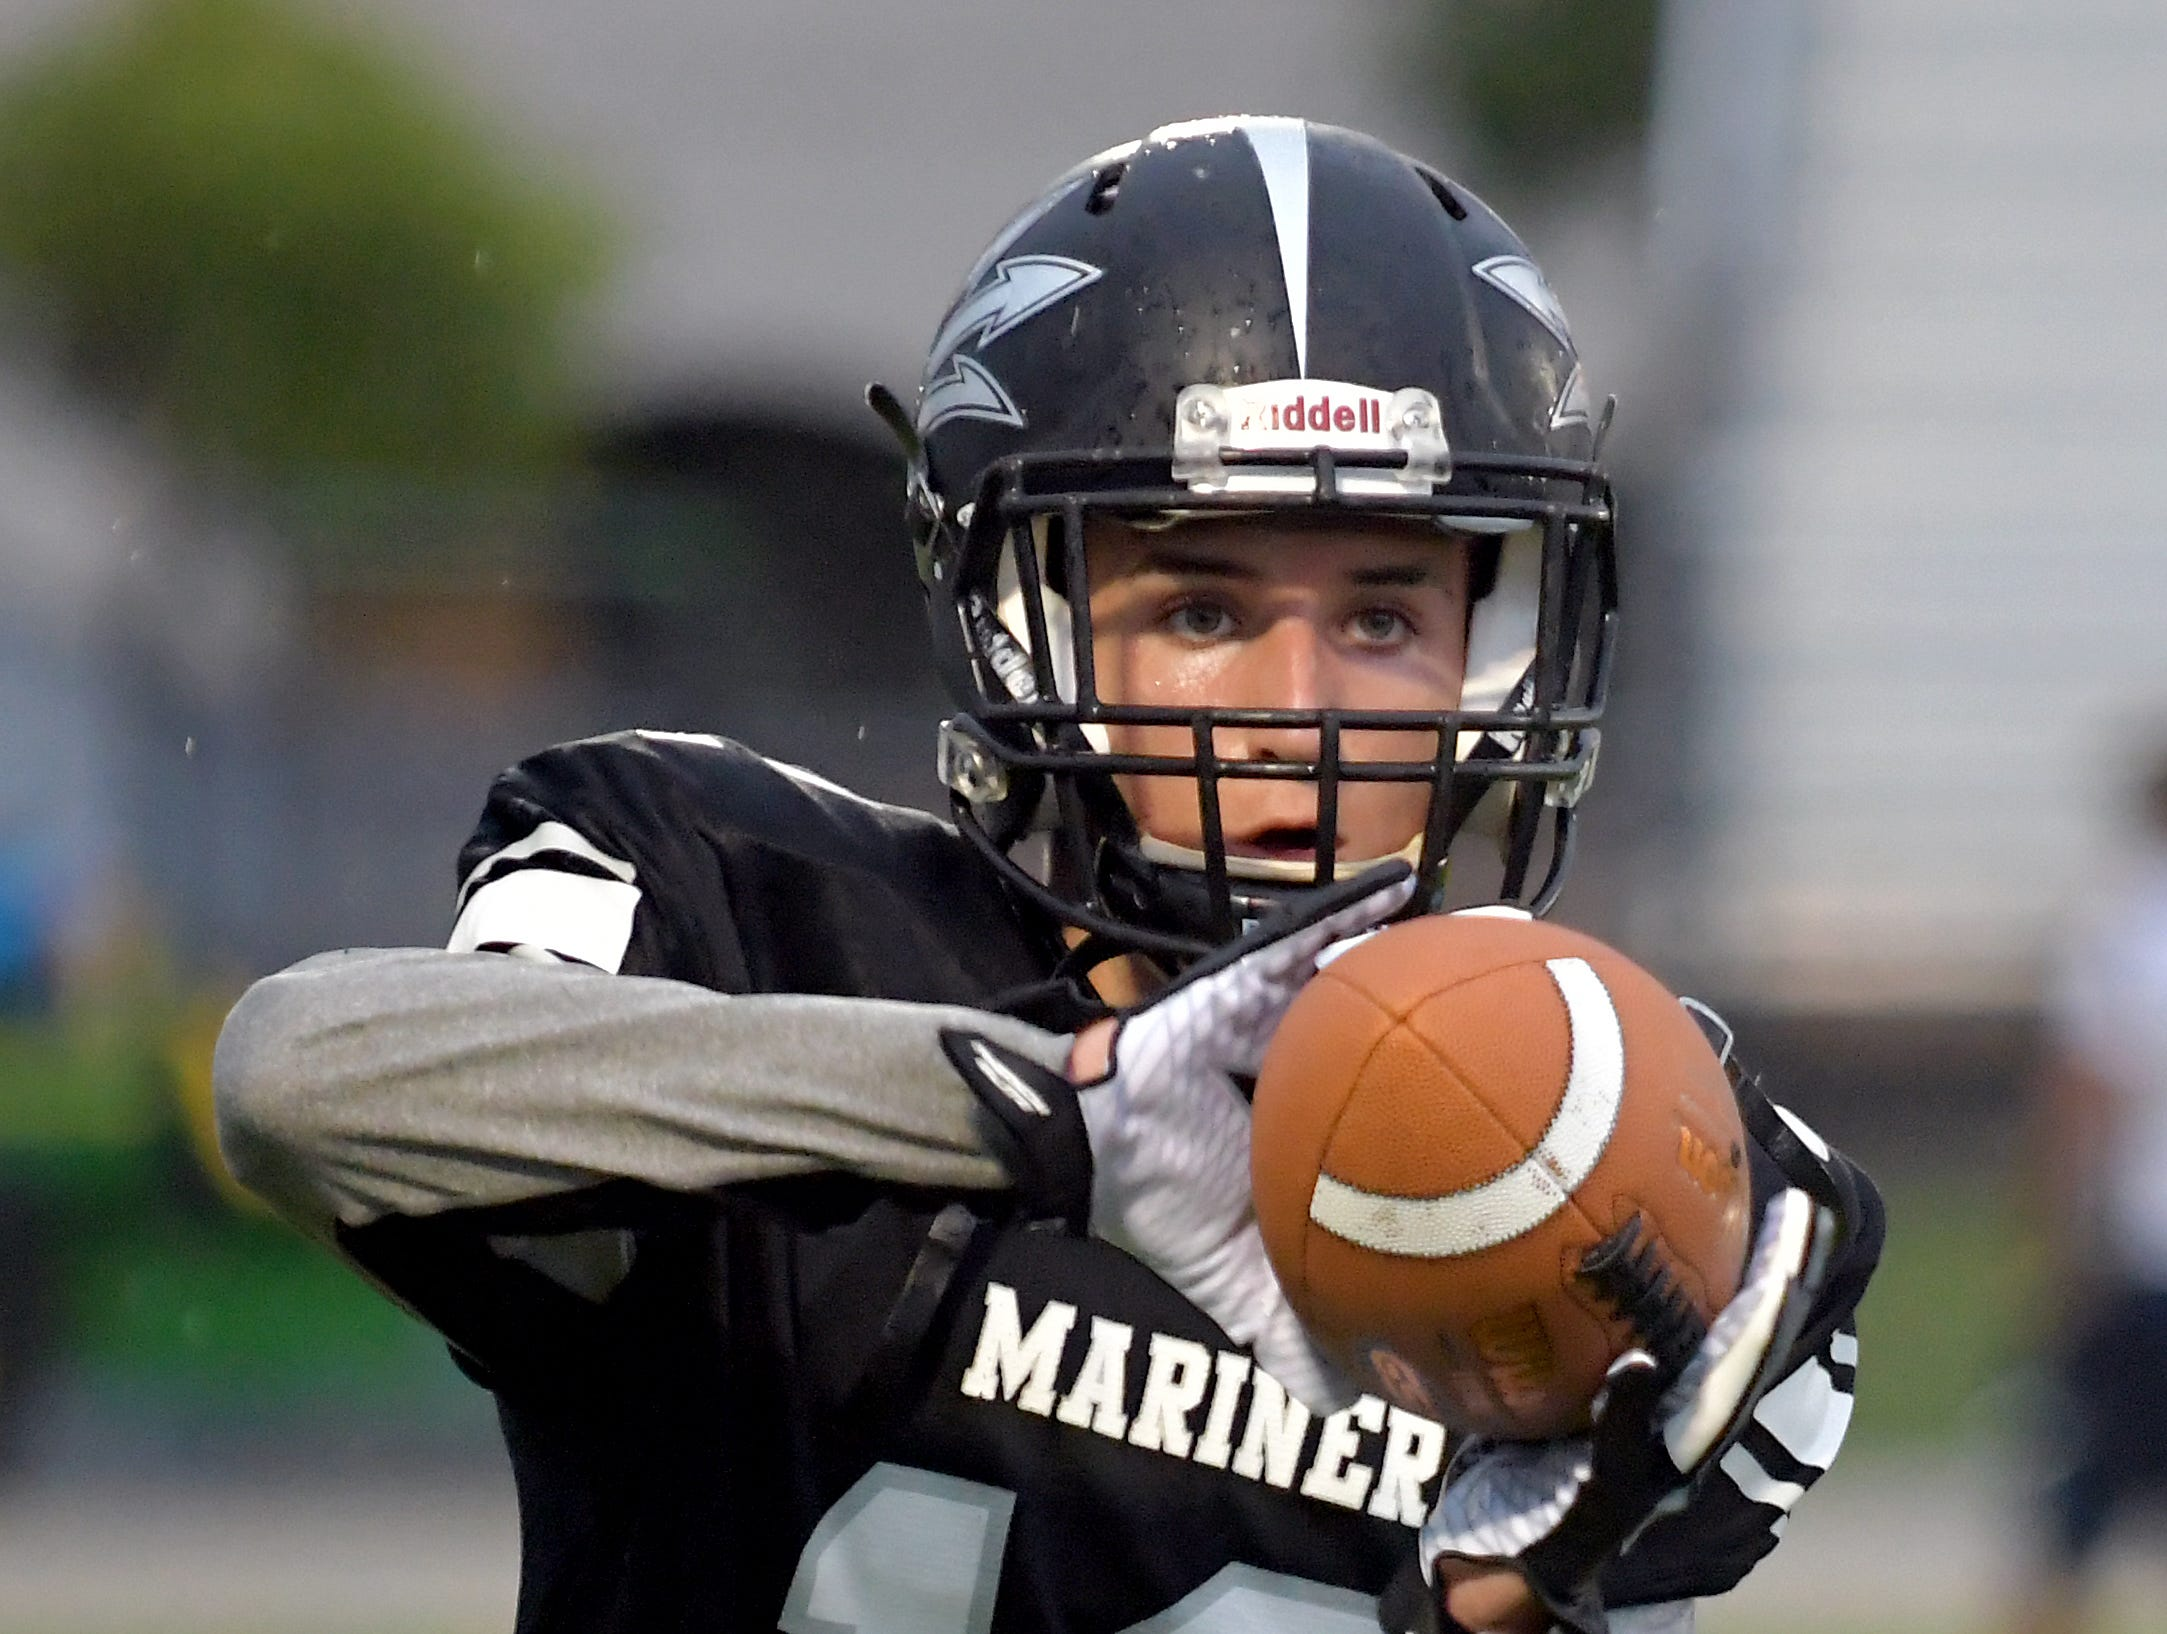 The Mariner Tritons host Estero Wildcats in a Monday night match up at Mariner High School in Cape Coral Monday, Aug. 27, 2018.